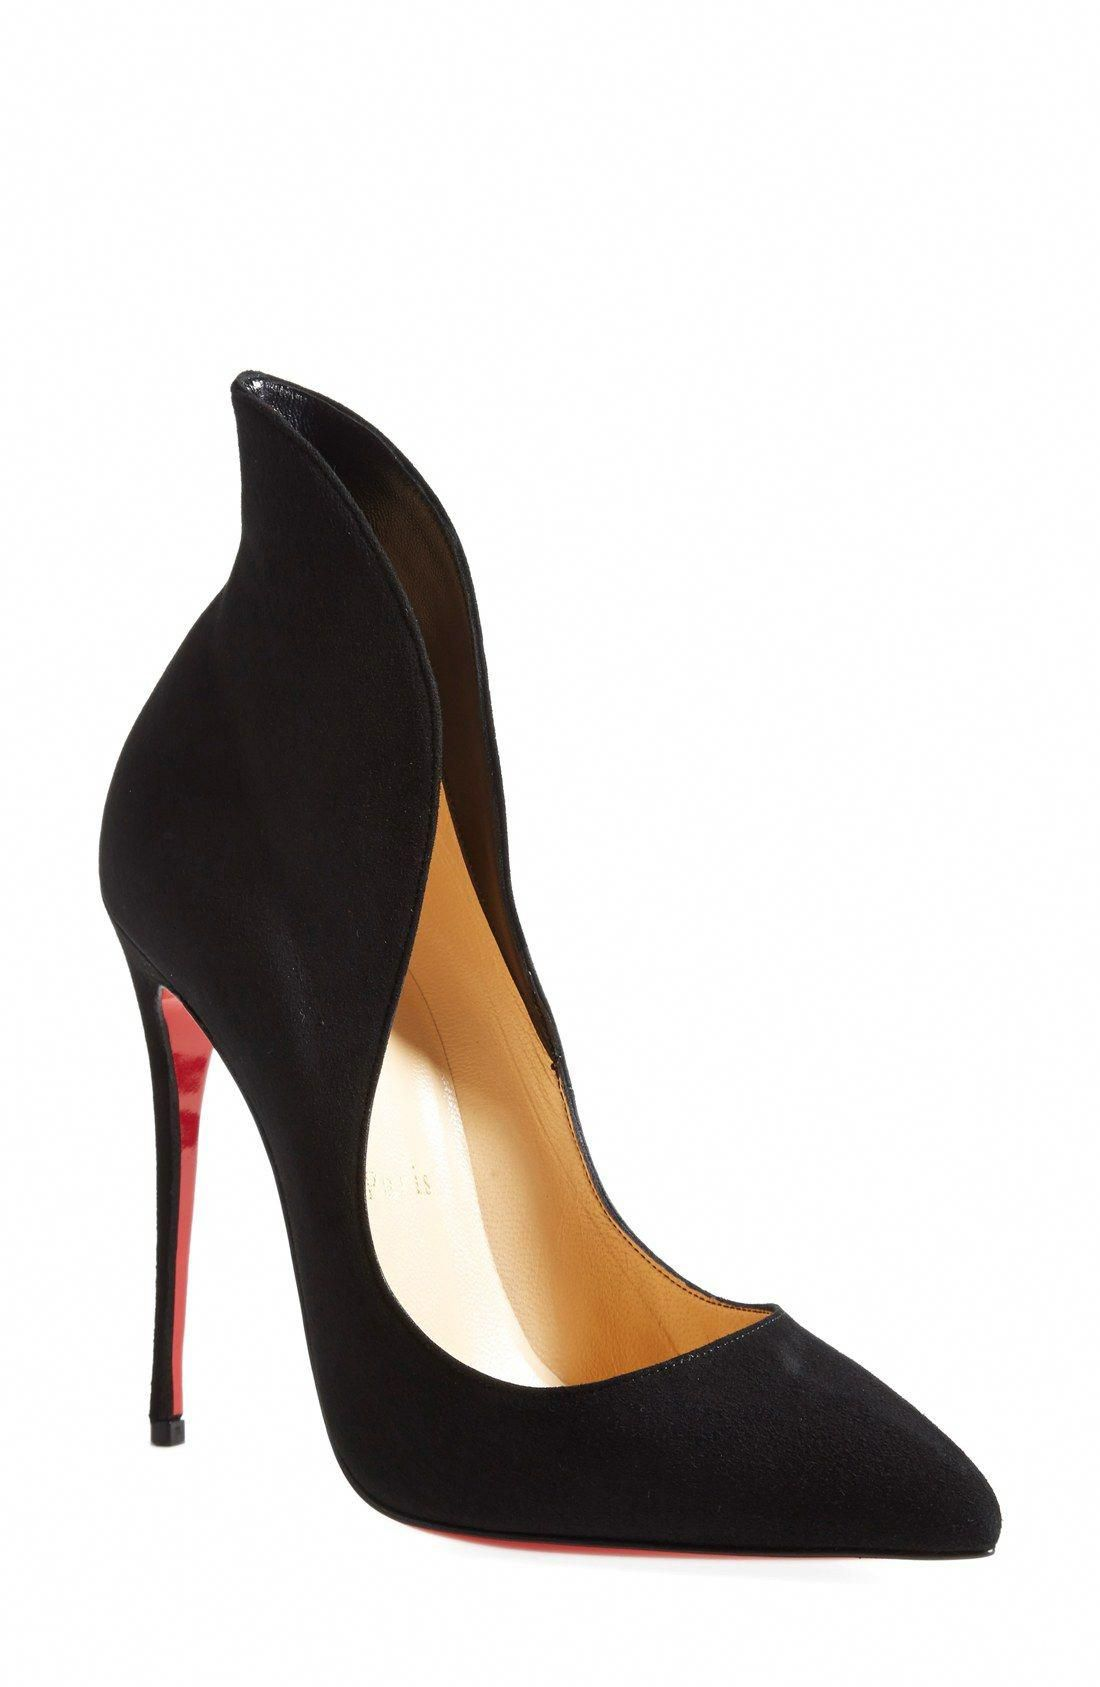 7d625a67f82 Free shipping and returns on Christian Louboutin  Mea Culpa  Flared Pointy  Toe Pump at Nordstrom.com. Christian Louboutin s iconic sole was born from  a ...